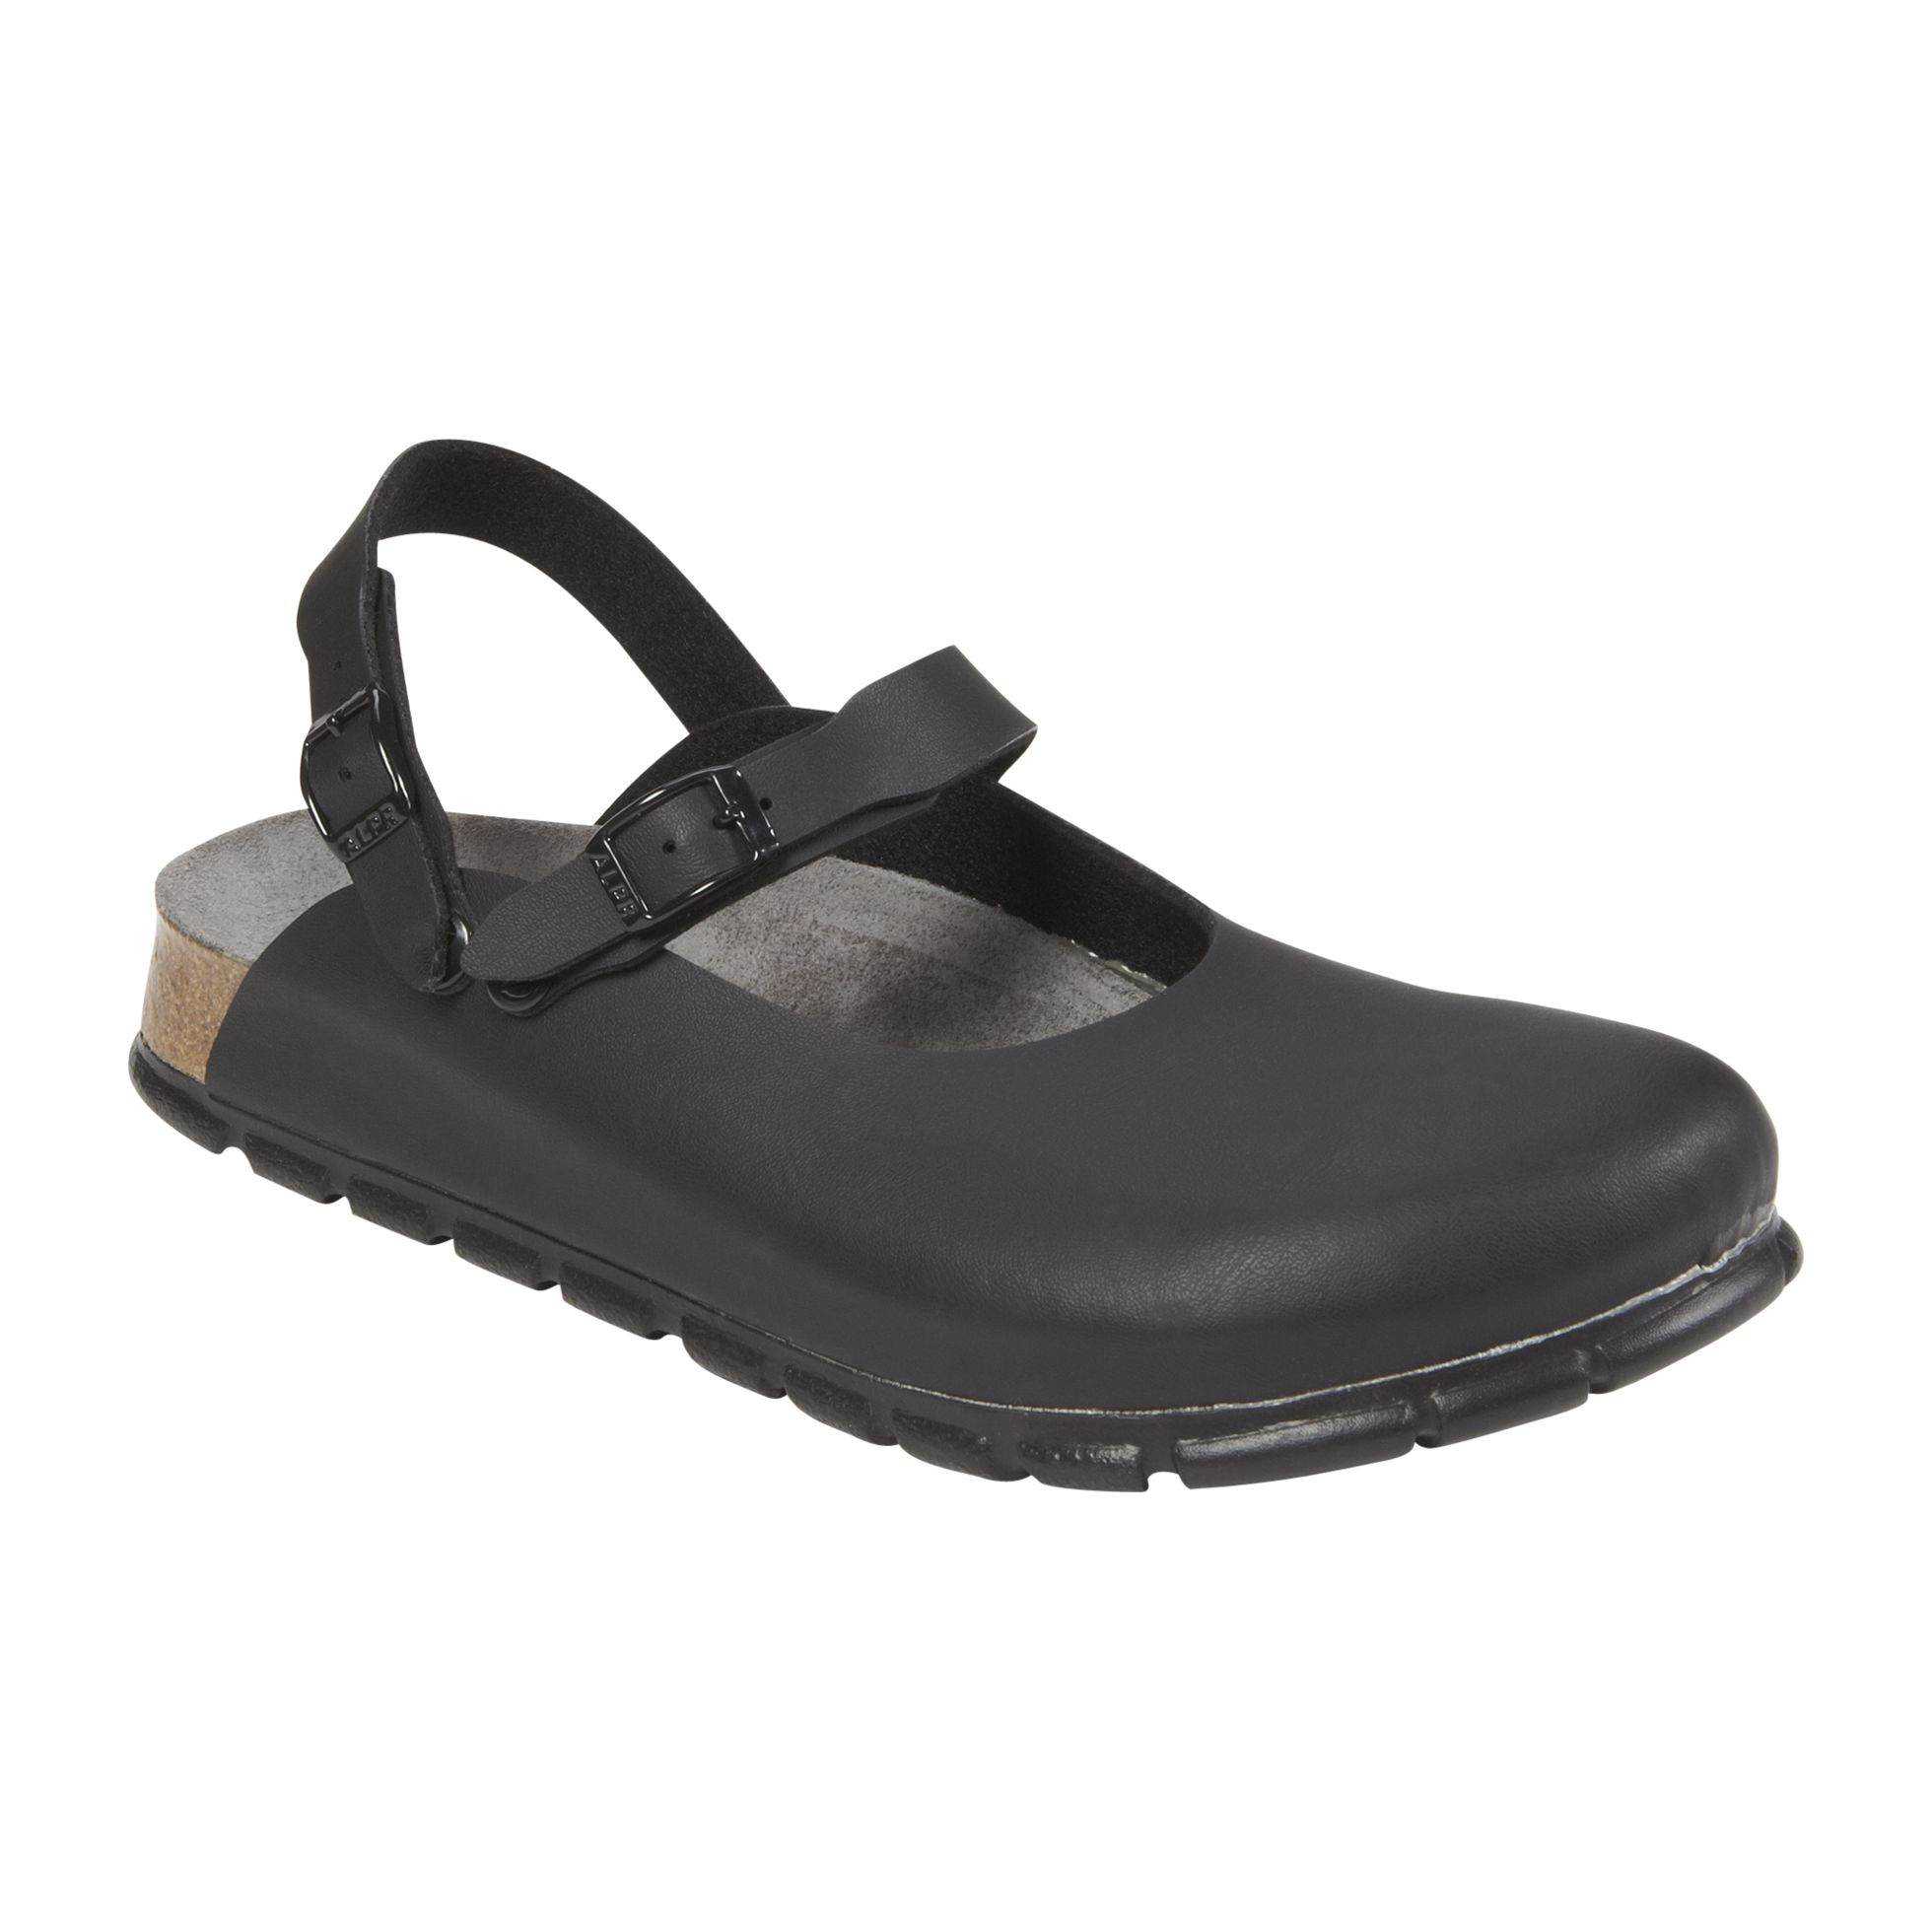 Women's 165 Birko Flor Work Clog - Black